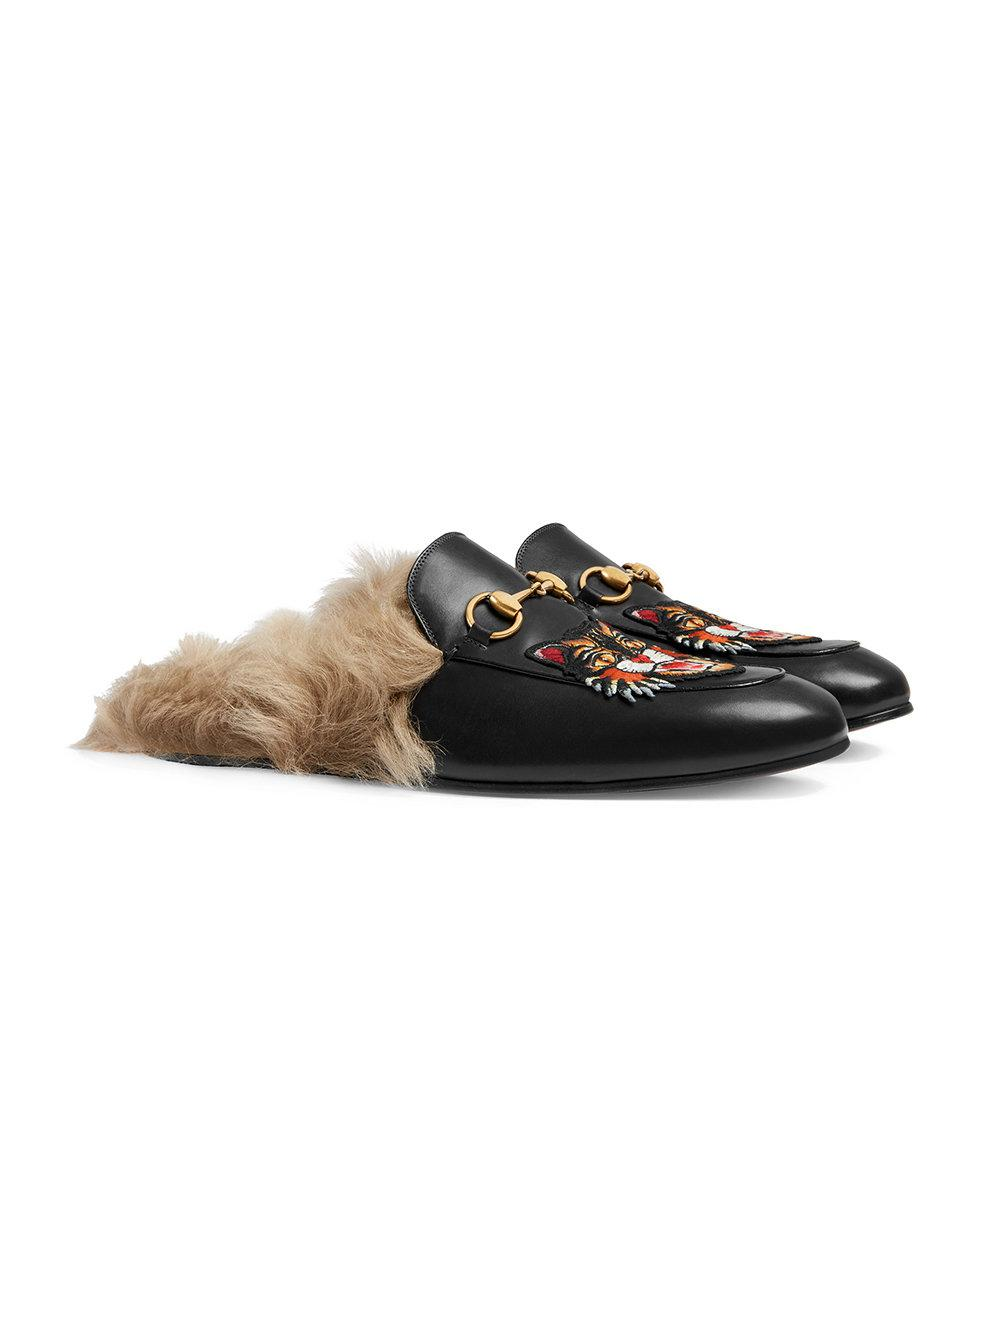 cbe24725e86 Lyst - Gucci Princetown Slippers With Angry Cat Appliqué in Black for Men - Save  36%